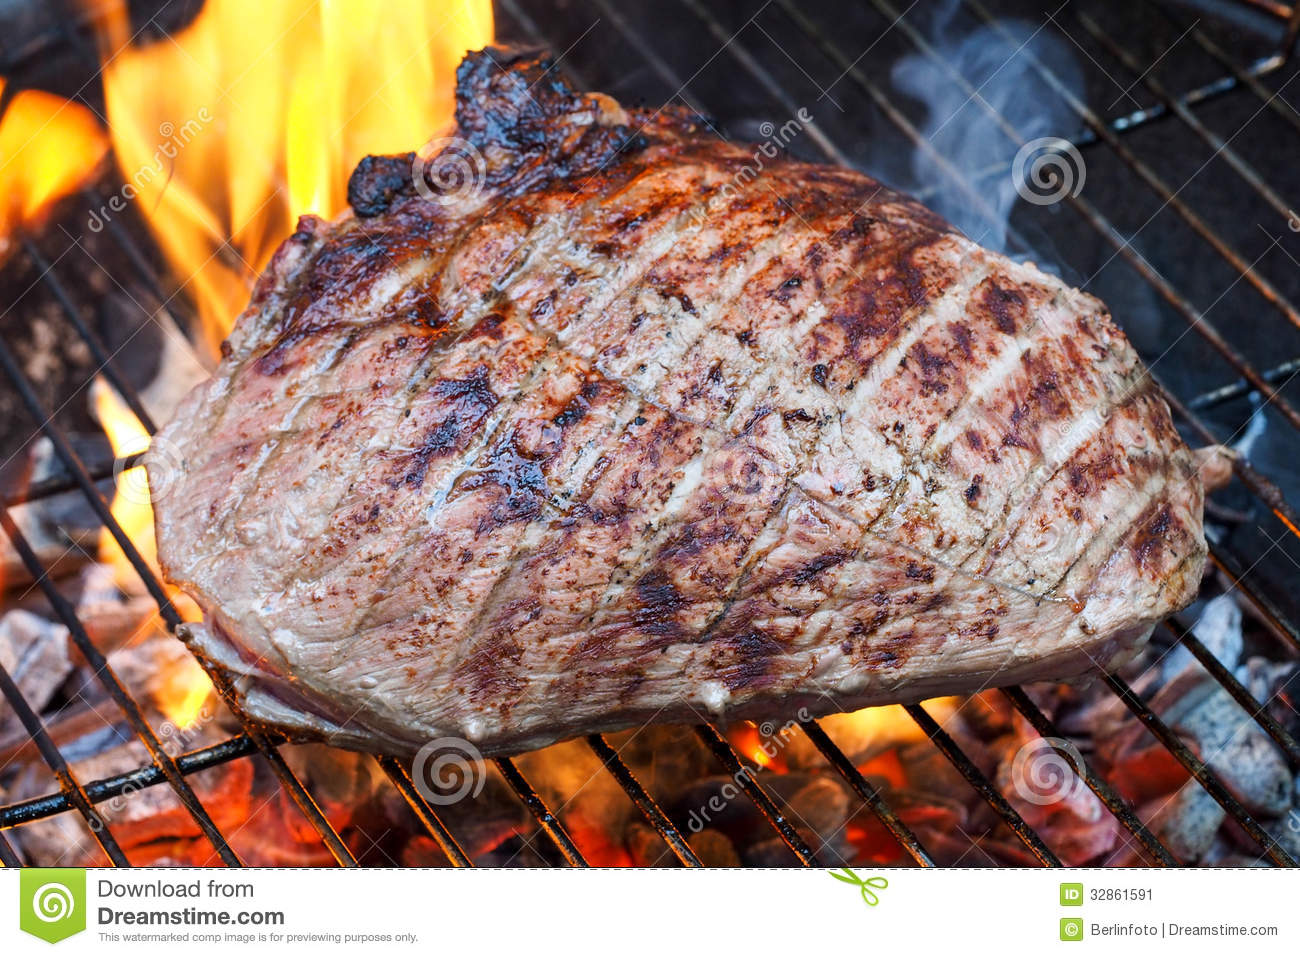 how to cook meat on charcoal grill